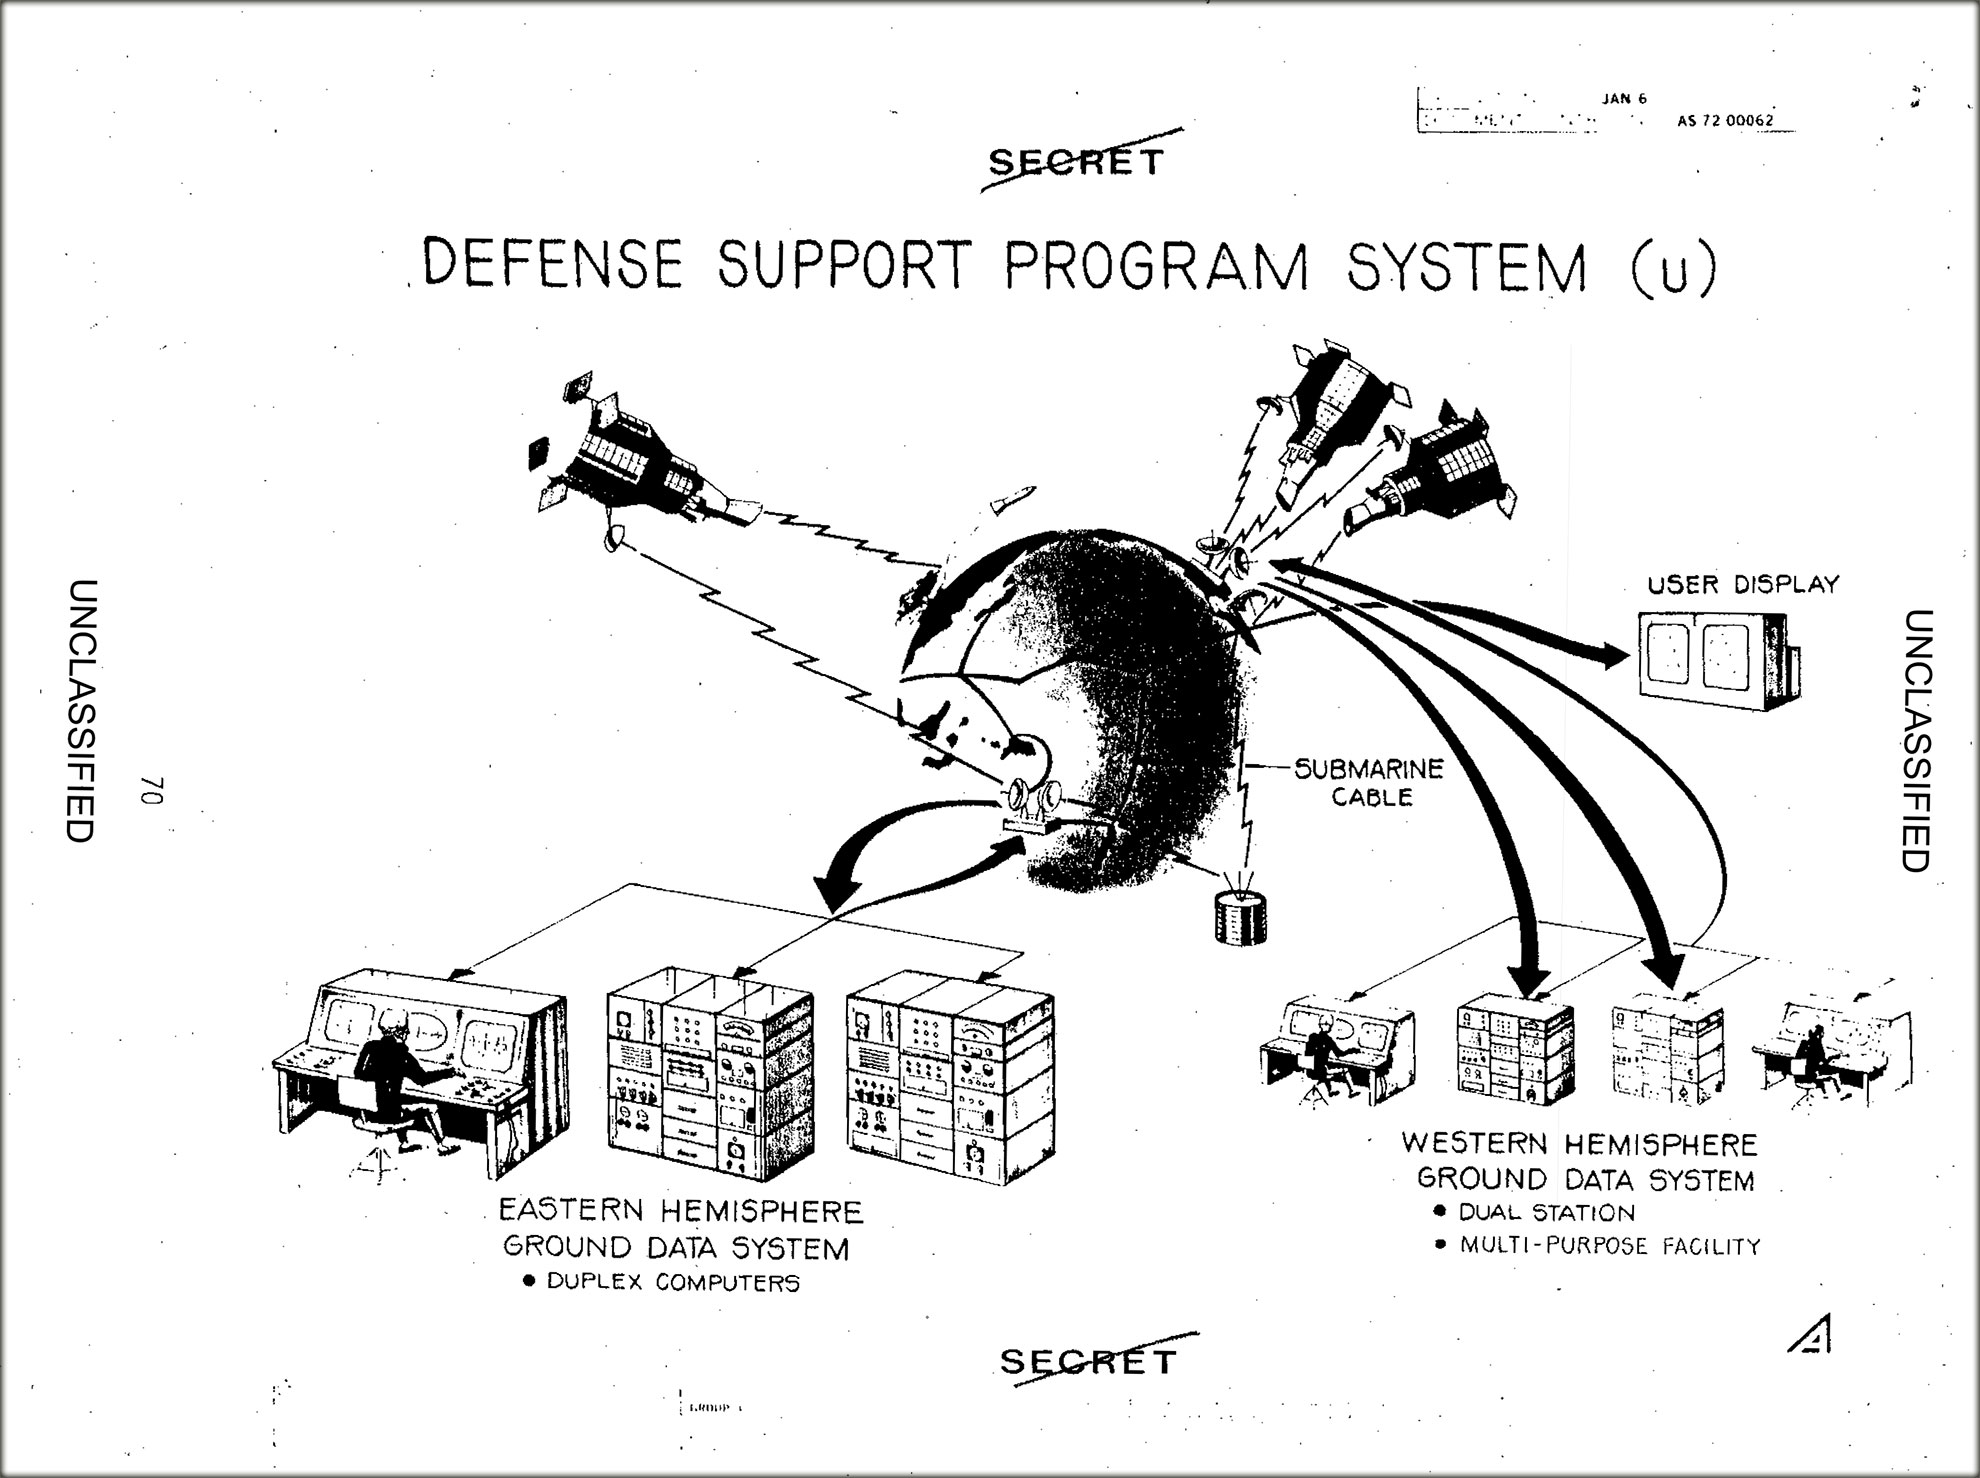 Drawing of Defense Support Program System satellites deployed for collecting and transmitting data on missile launches and nuclear explosions